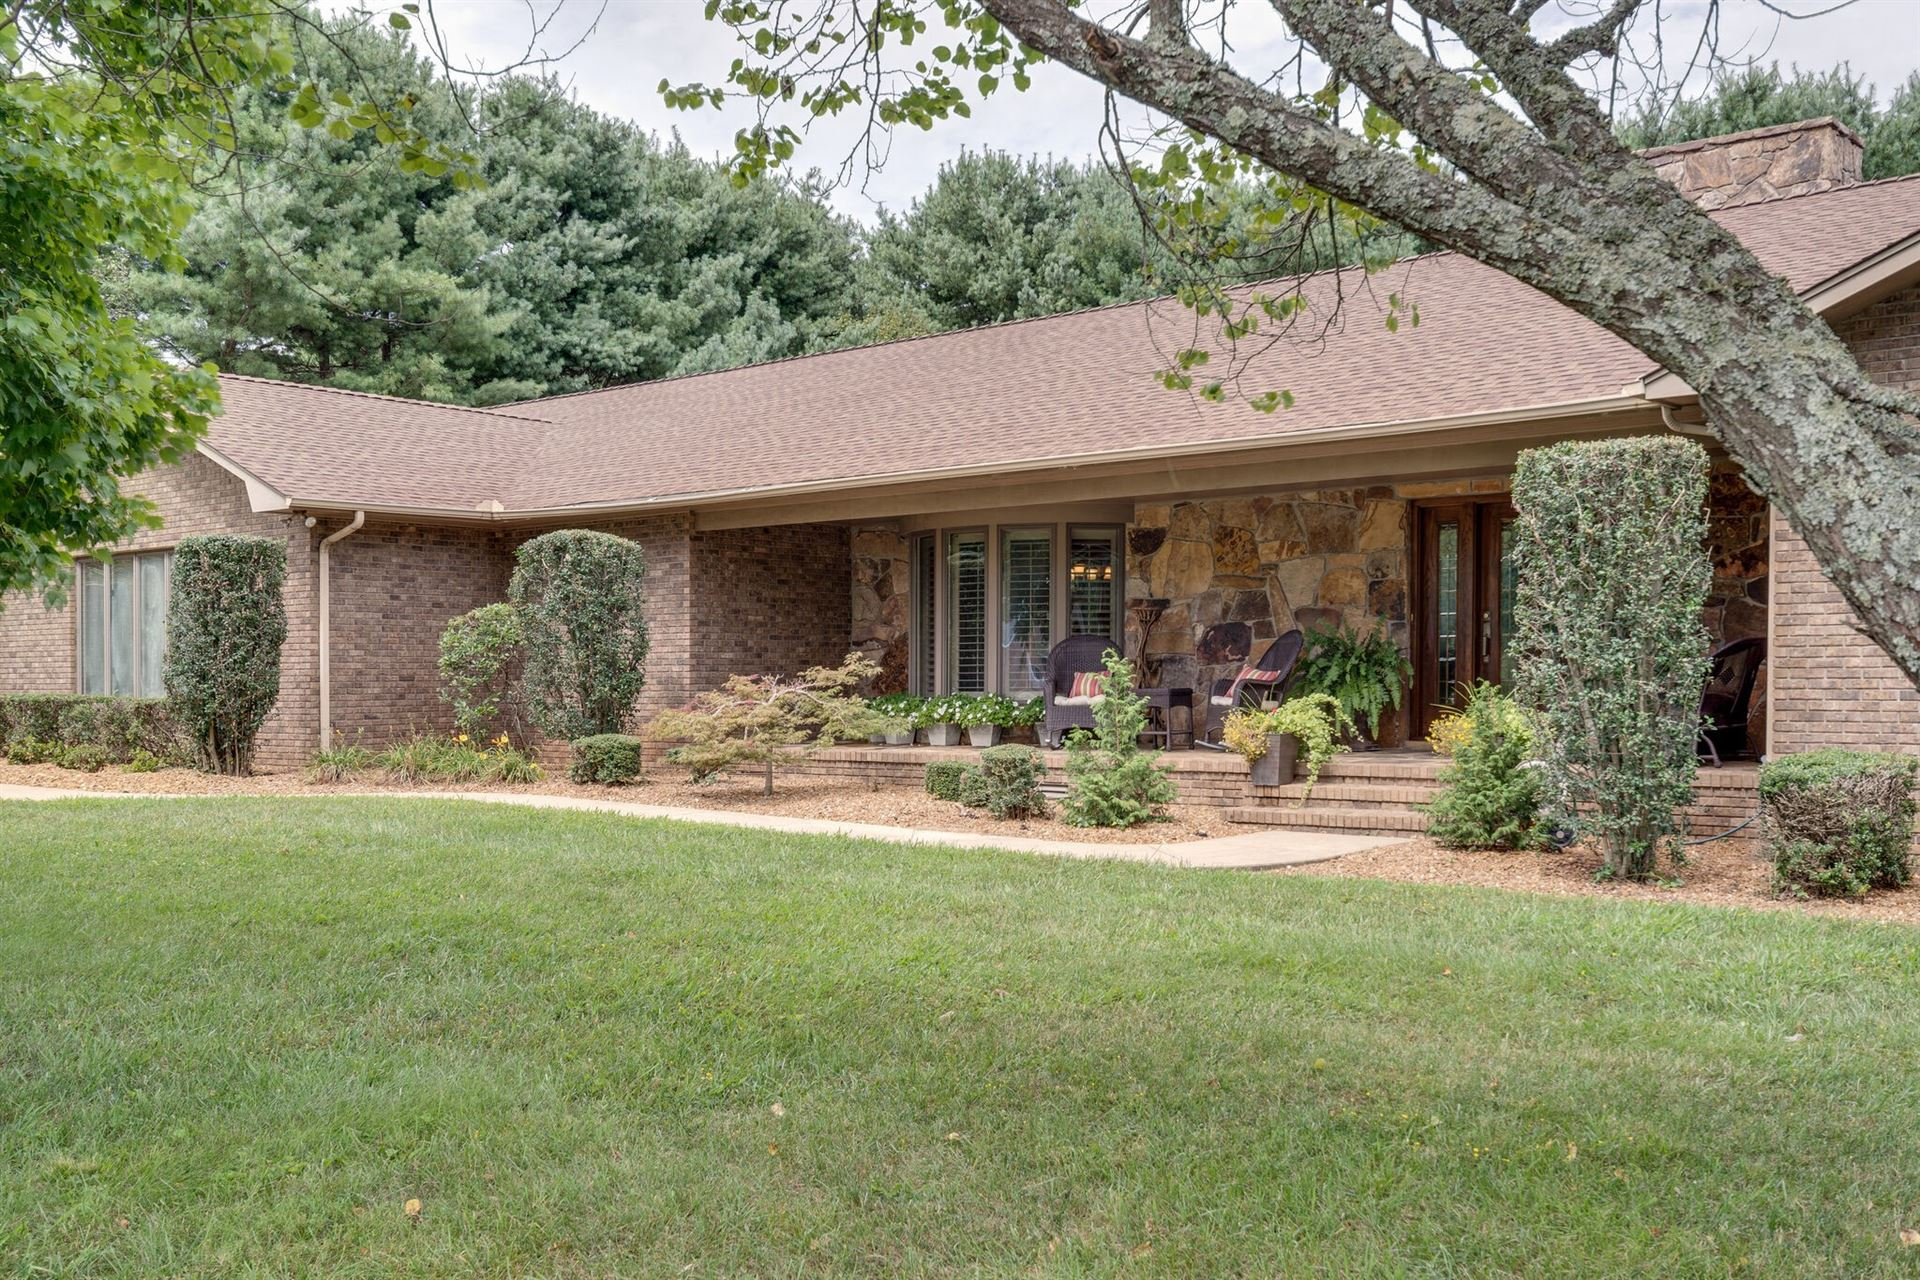 126 Brandi Way, Winchester, TN 37398 - MLS#: 2210153